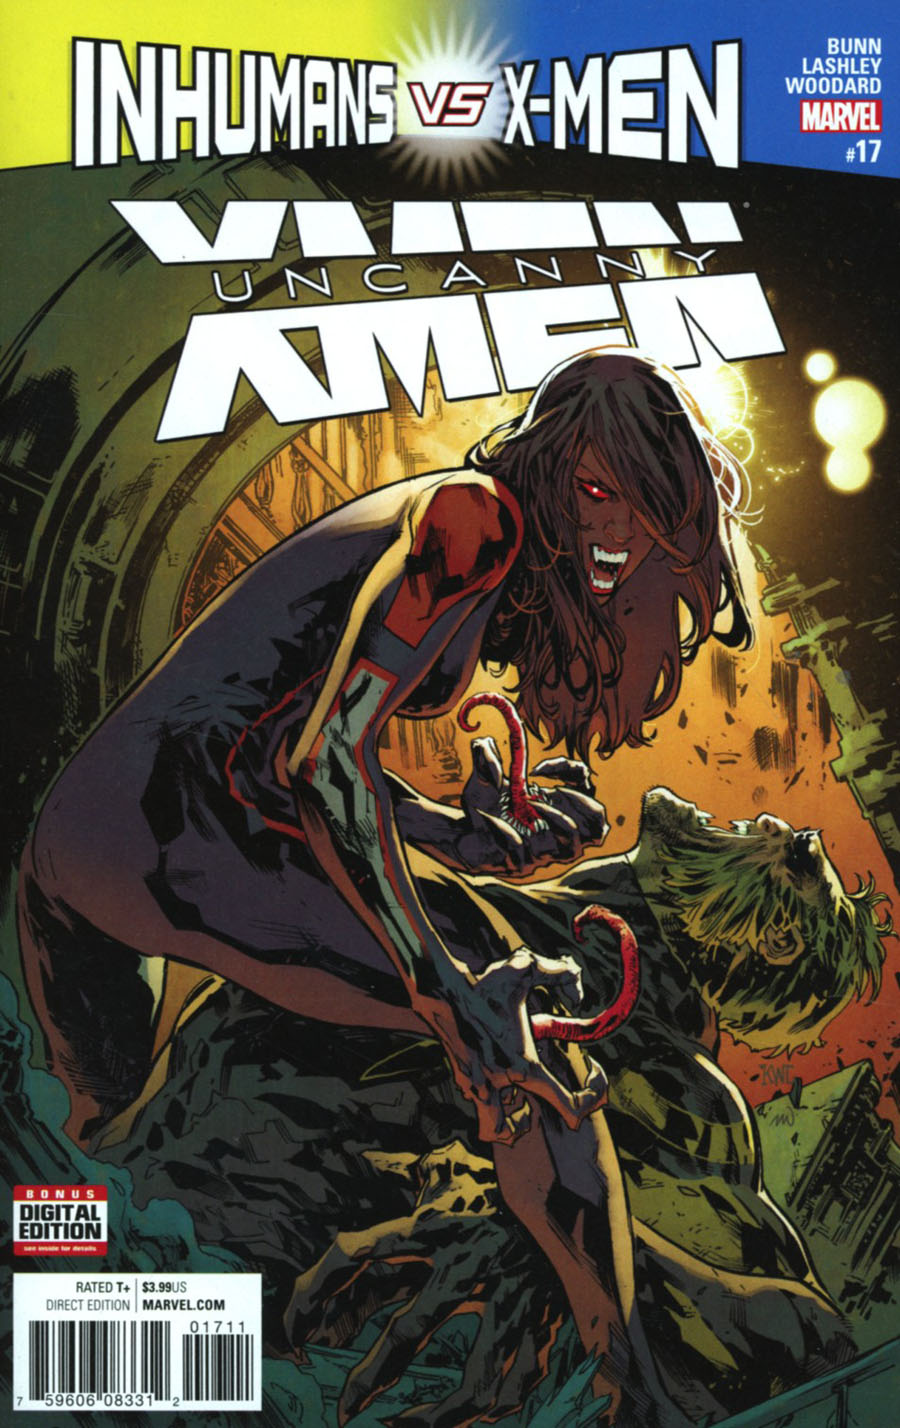 Uncanny X-Men Vol 4 #17 Cover A Regular Ken Lashley Cover (Inhumans vs X-Men Tie-In)